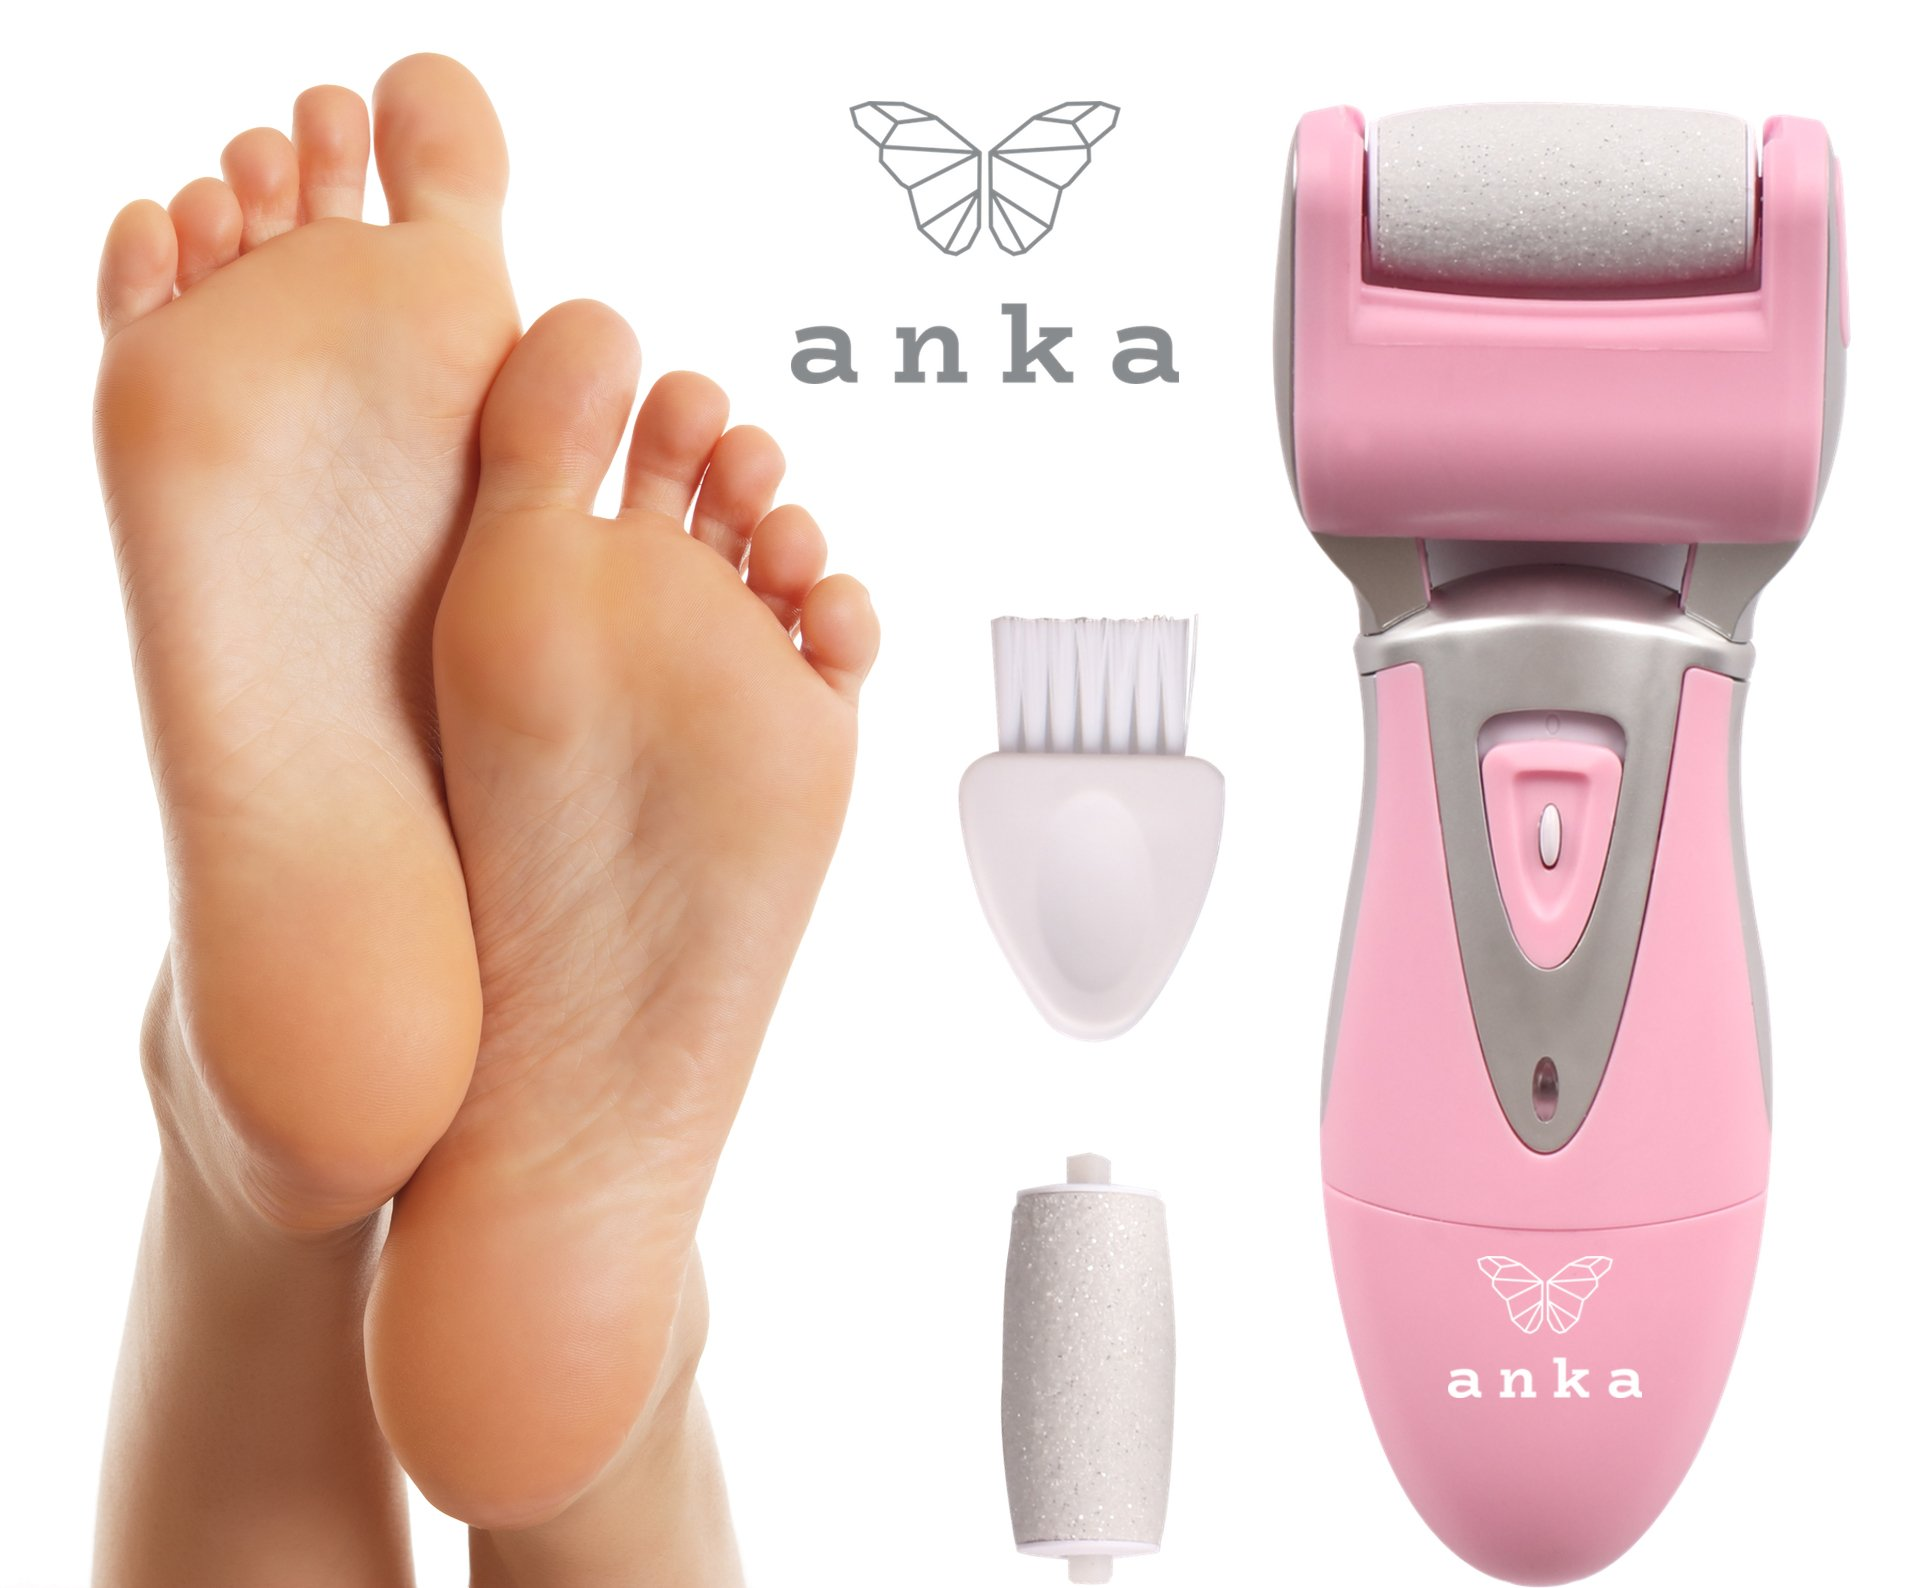 **70% Off Summer Sale ** Rechargeable Pedicure Foot File - Electric Callus Remover & Foot Grinder for Rough & Dead Skin for Professional Home Spa (Wet or Dry Feet) by Anka (Image #1)